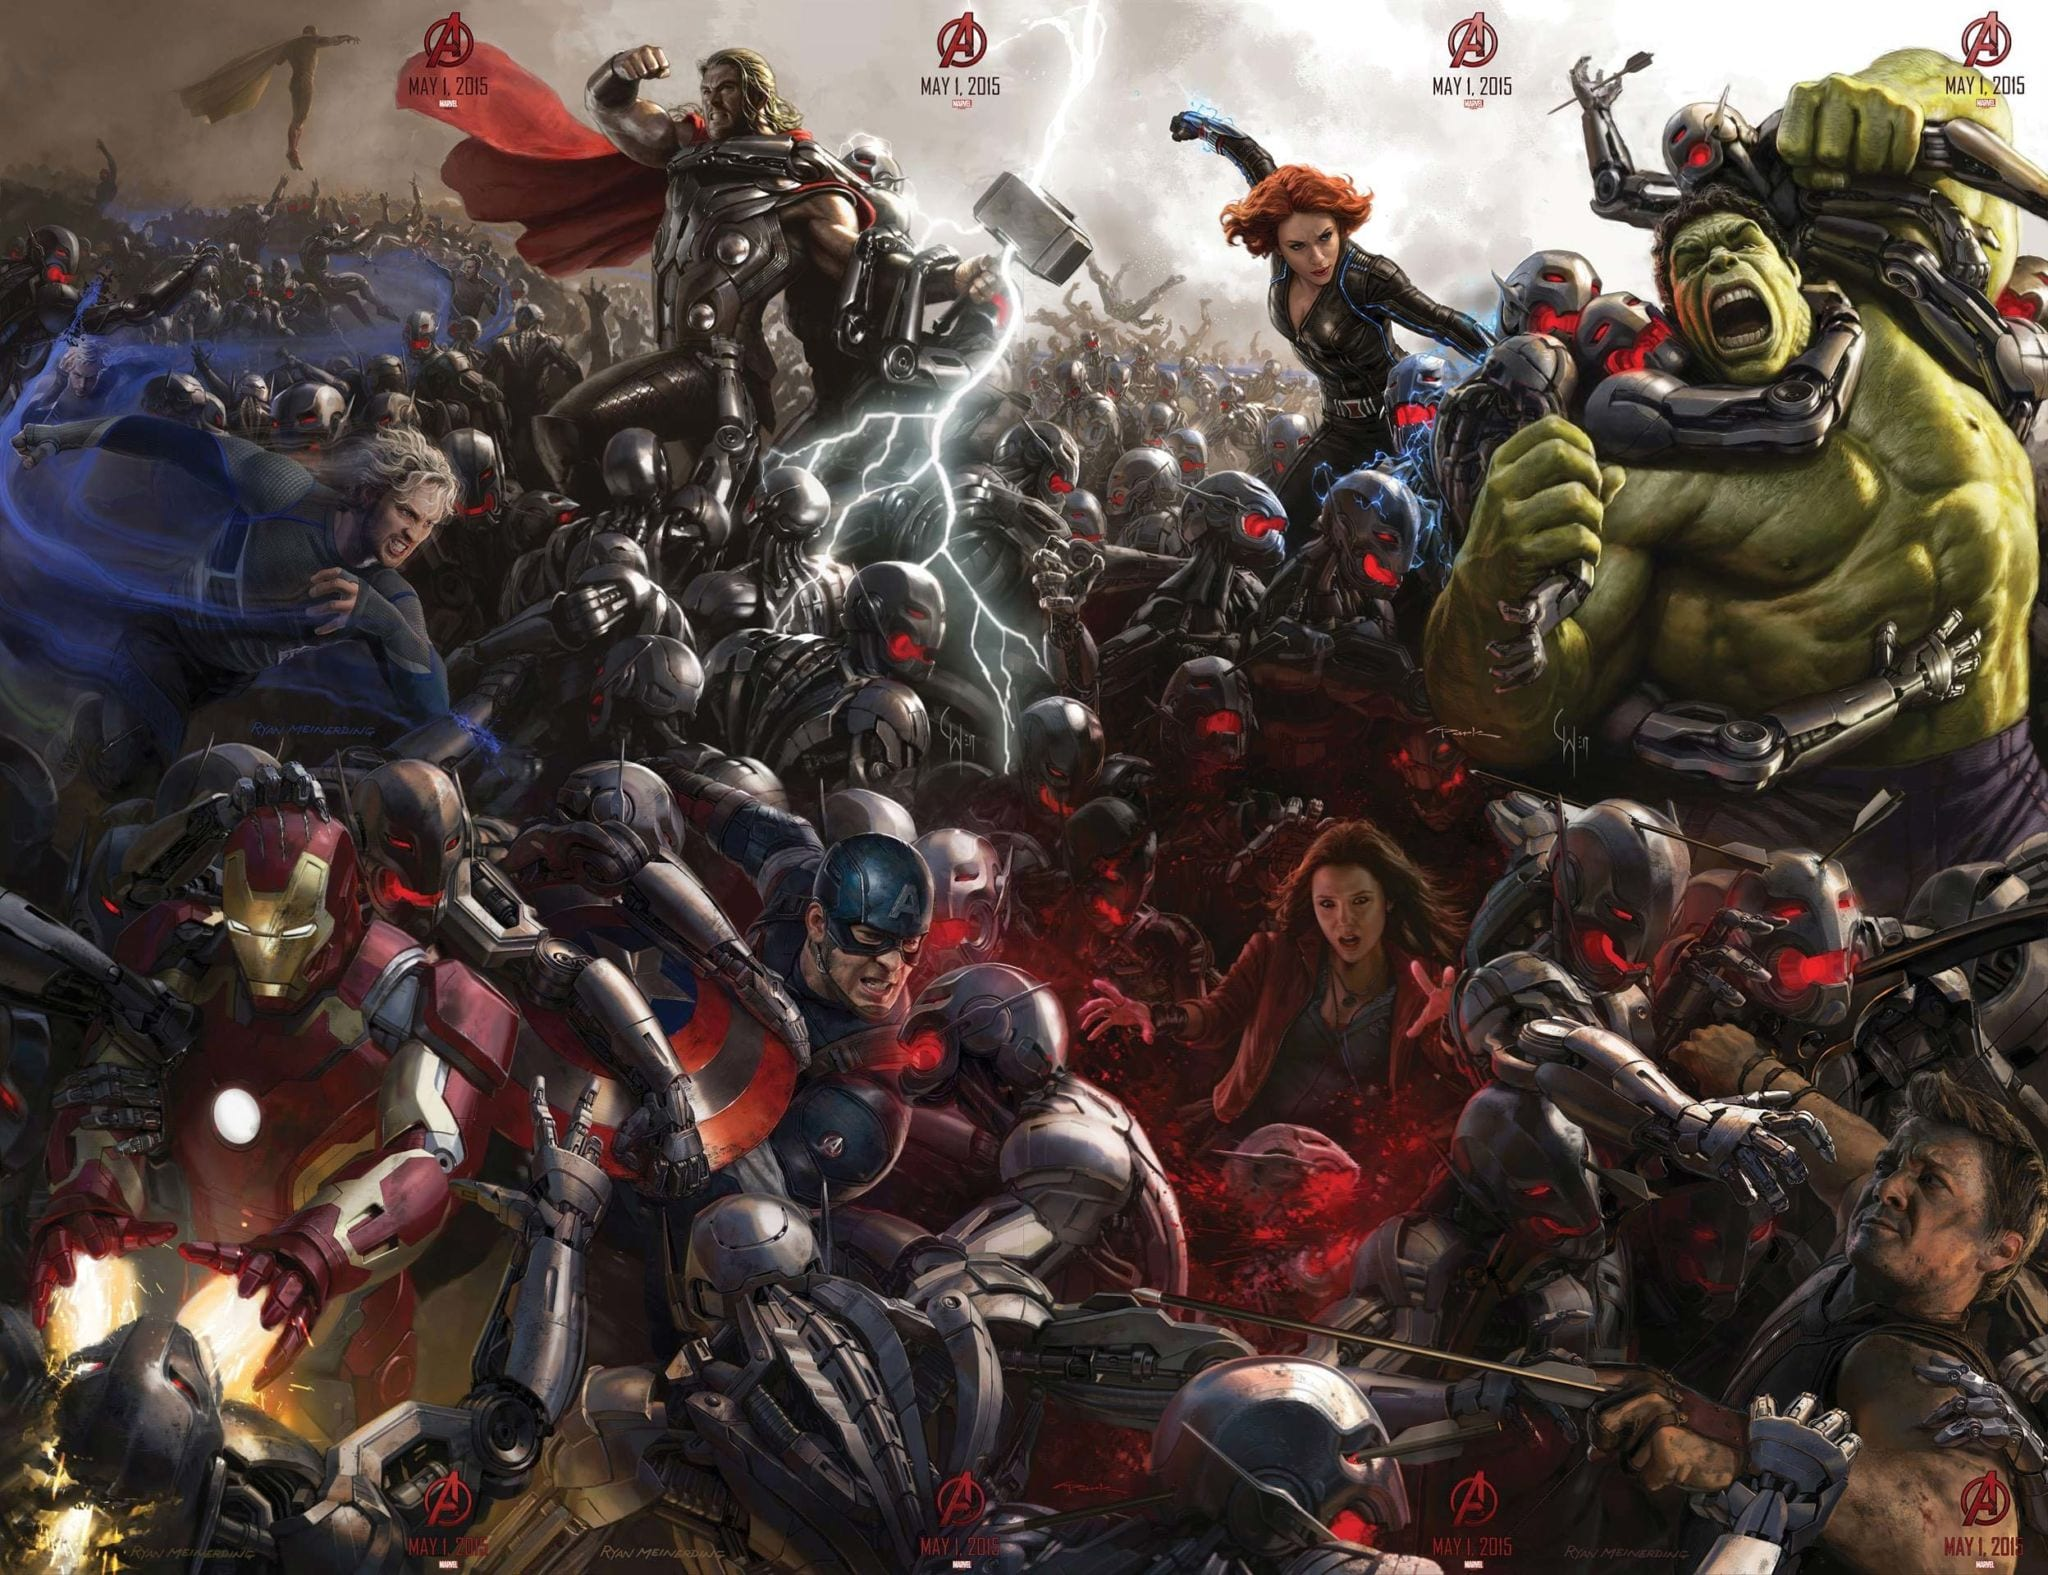 81505_cU5iUwkWsL_avengers_age_of_ultron_panorama_art